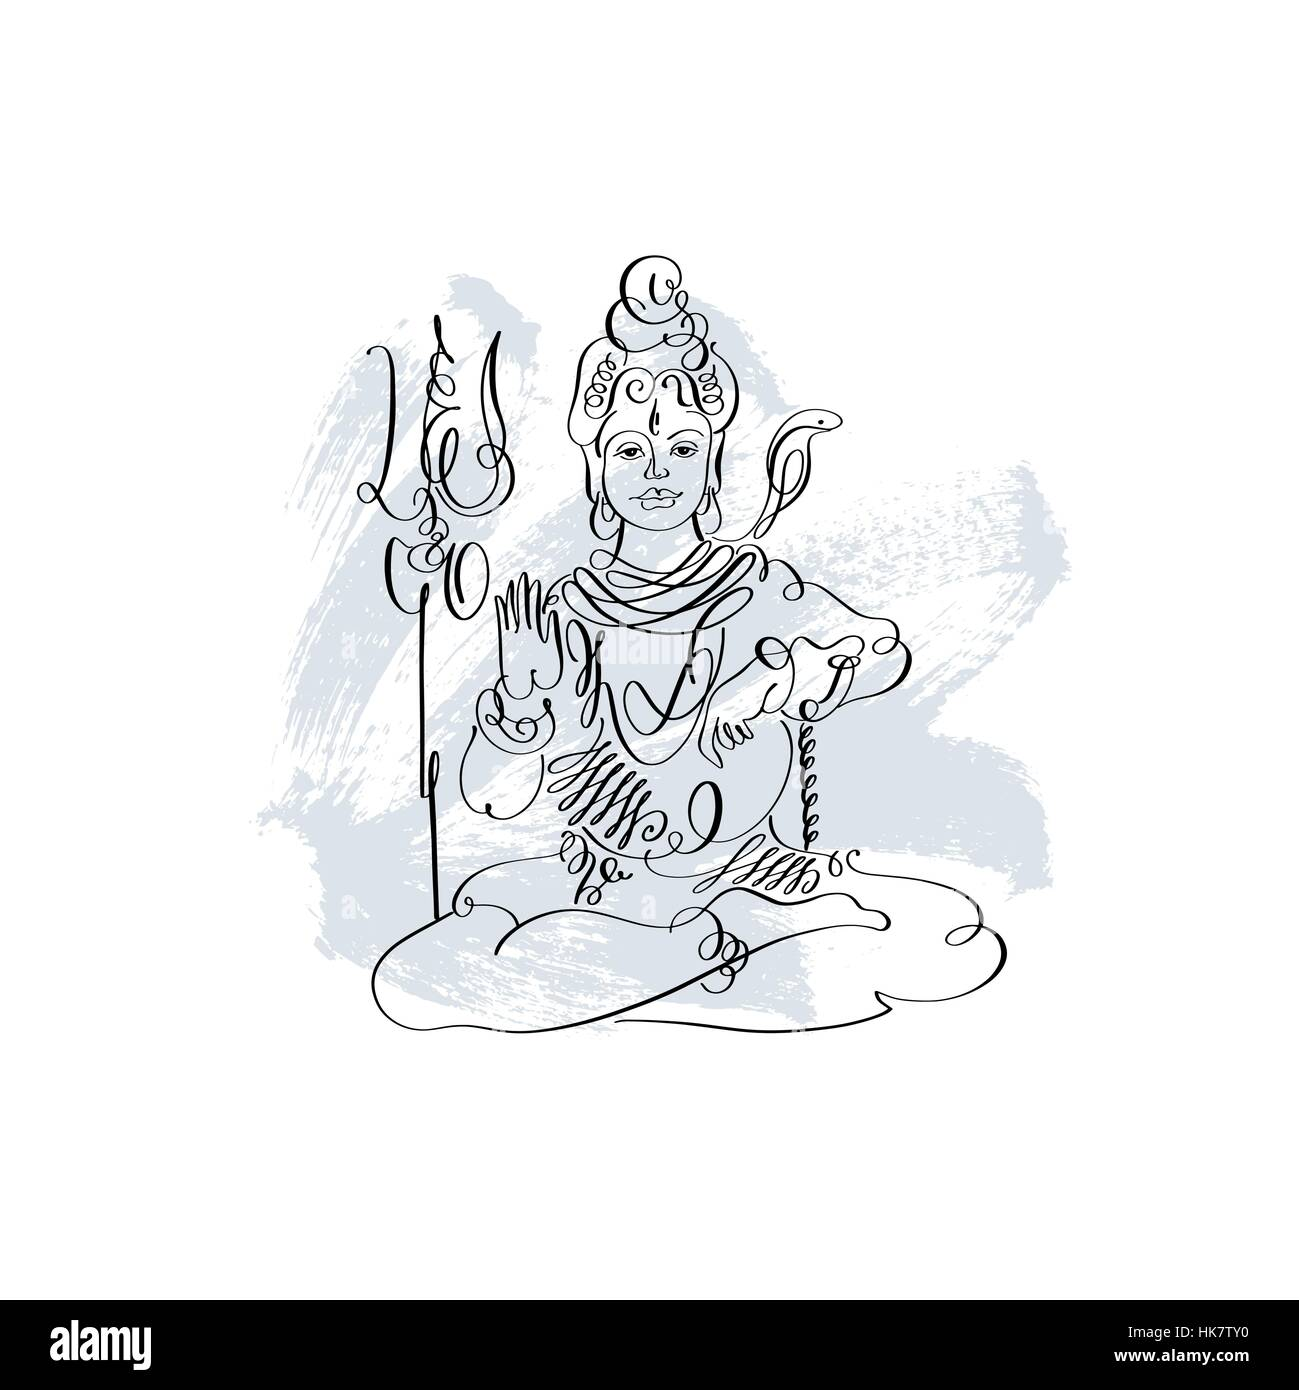 Lord Shiva black and white calligraphic drawing to Maha